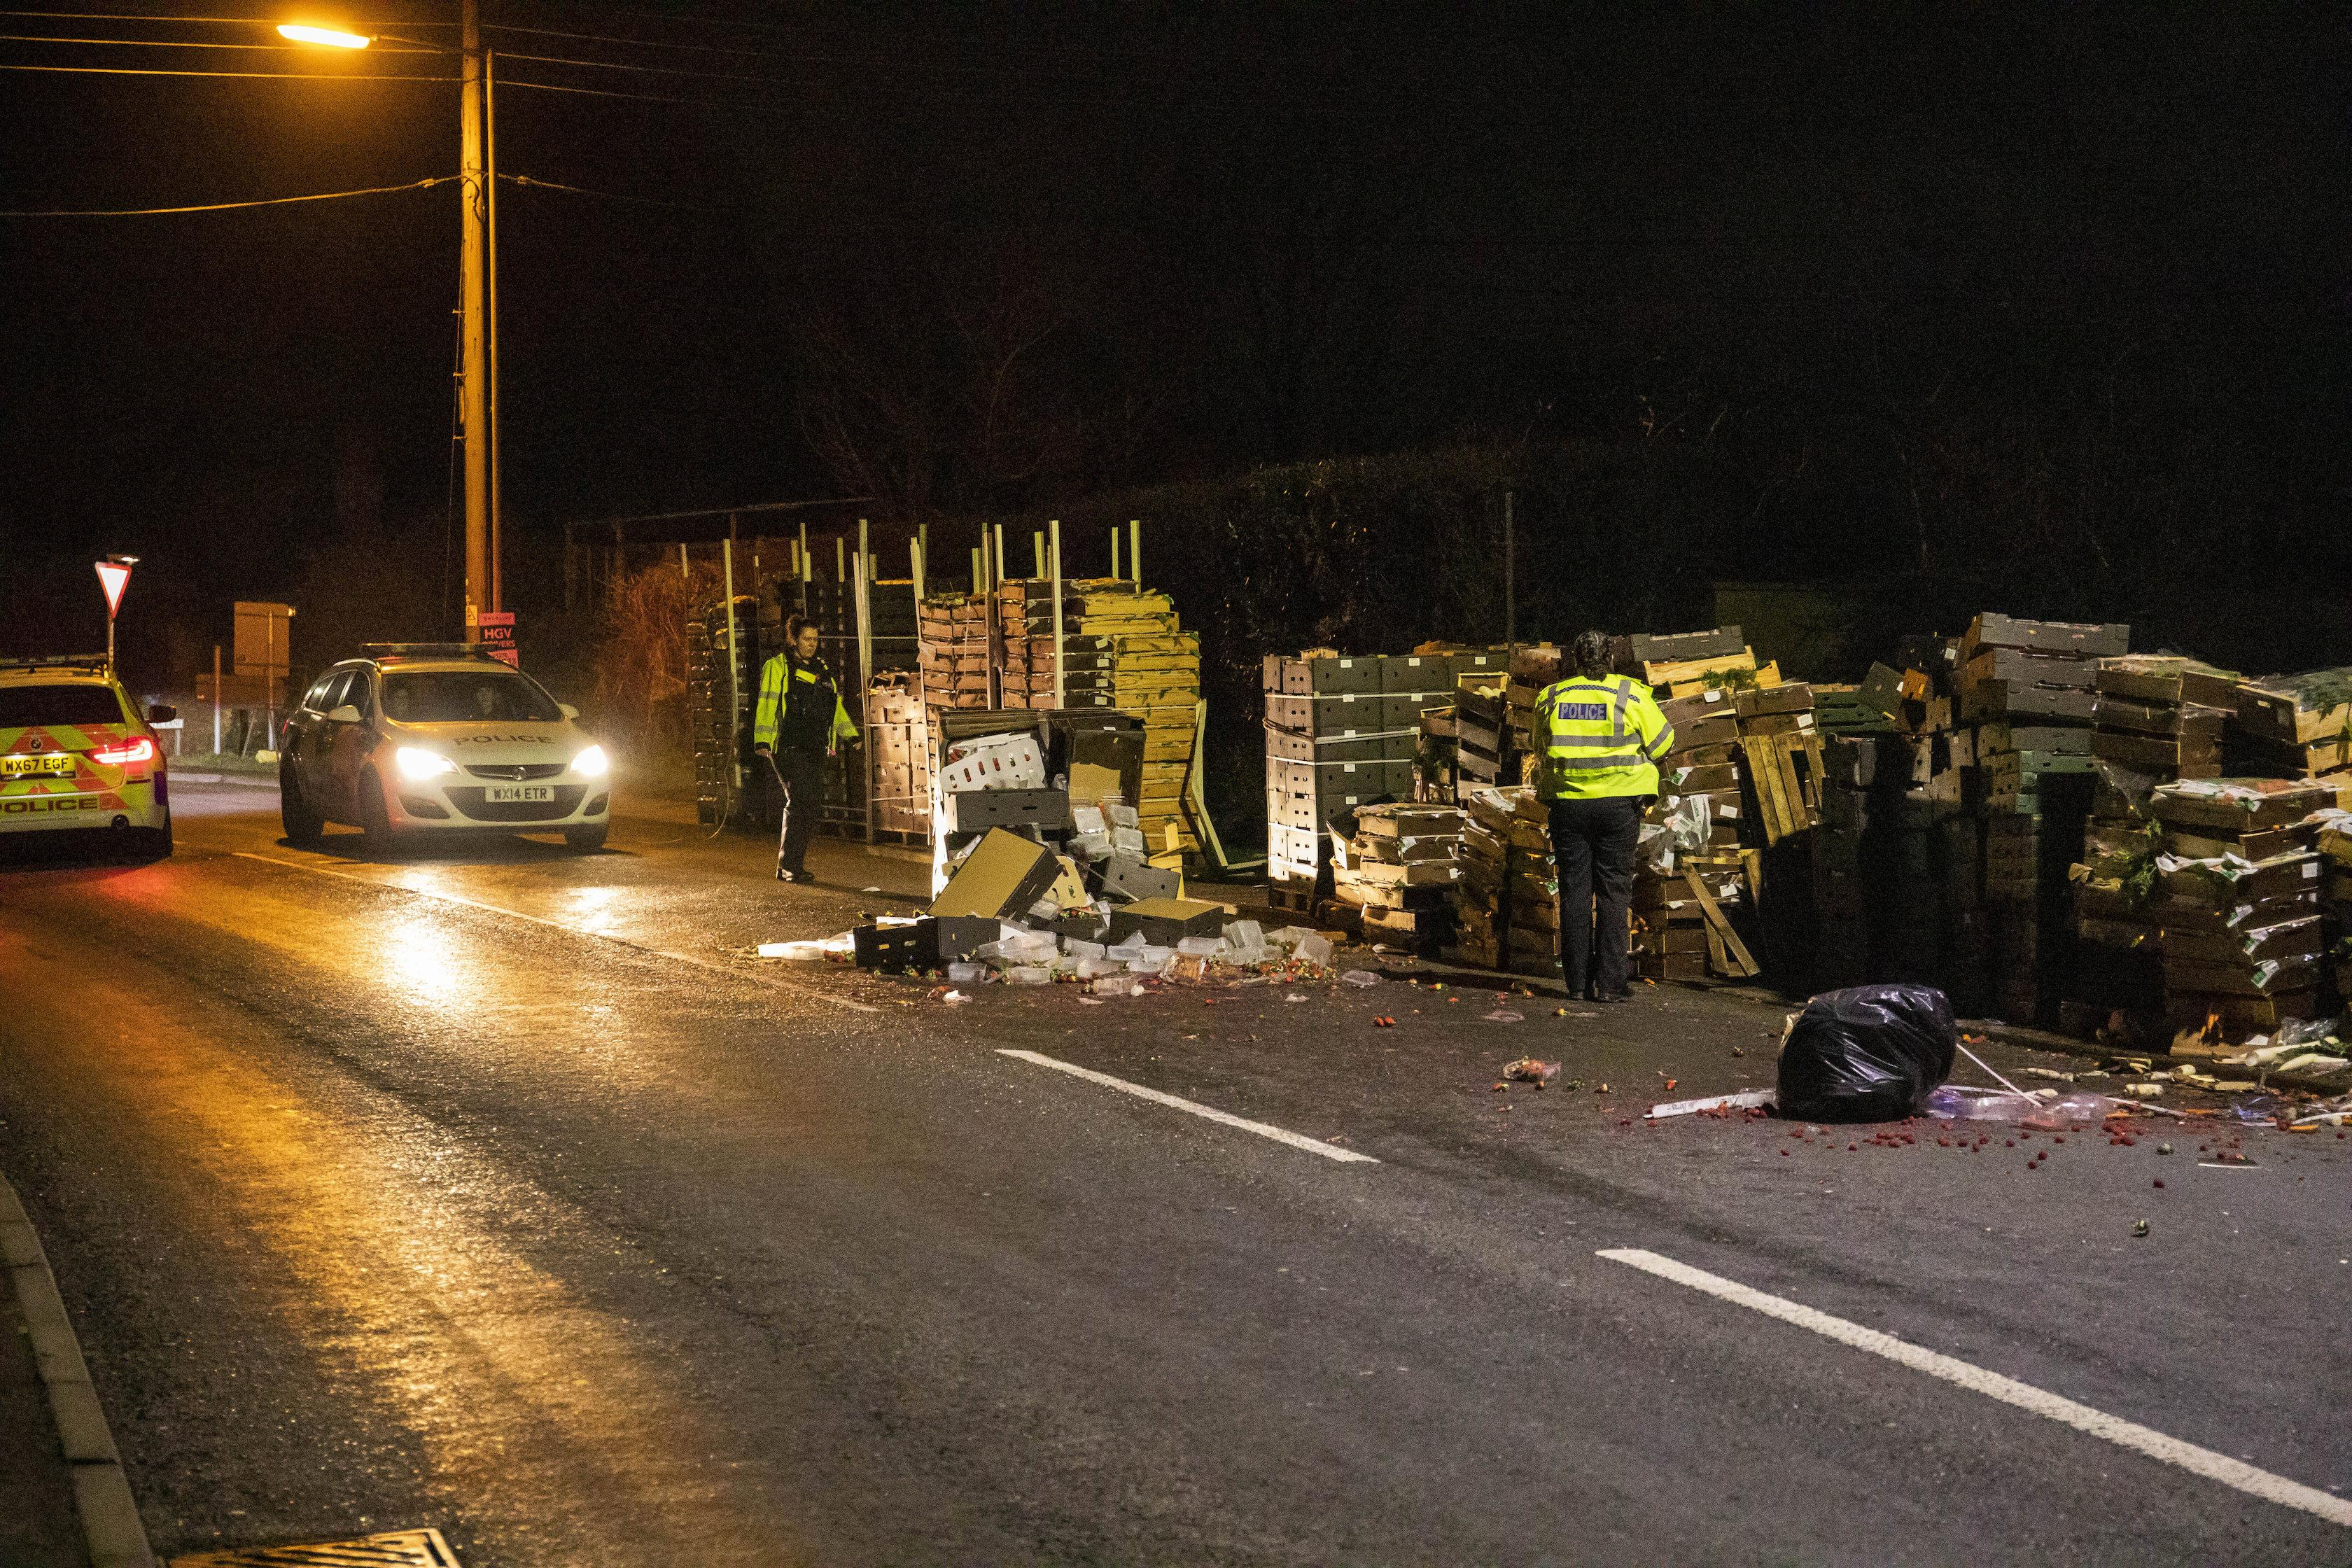 Wooden pallets full of fruit and vegetables are left strewn across the A38 into North Petherton after a member of public reported seeing several people coming out of a lorry on the road resulting in a police investigation and numerous arrests on suspicion of immigration offences. Somerset. 16 January 2020. See SWNS story SWBRlorry